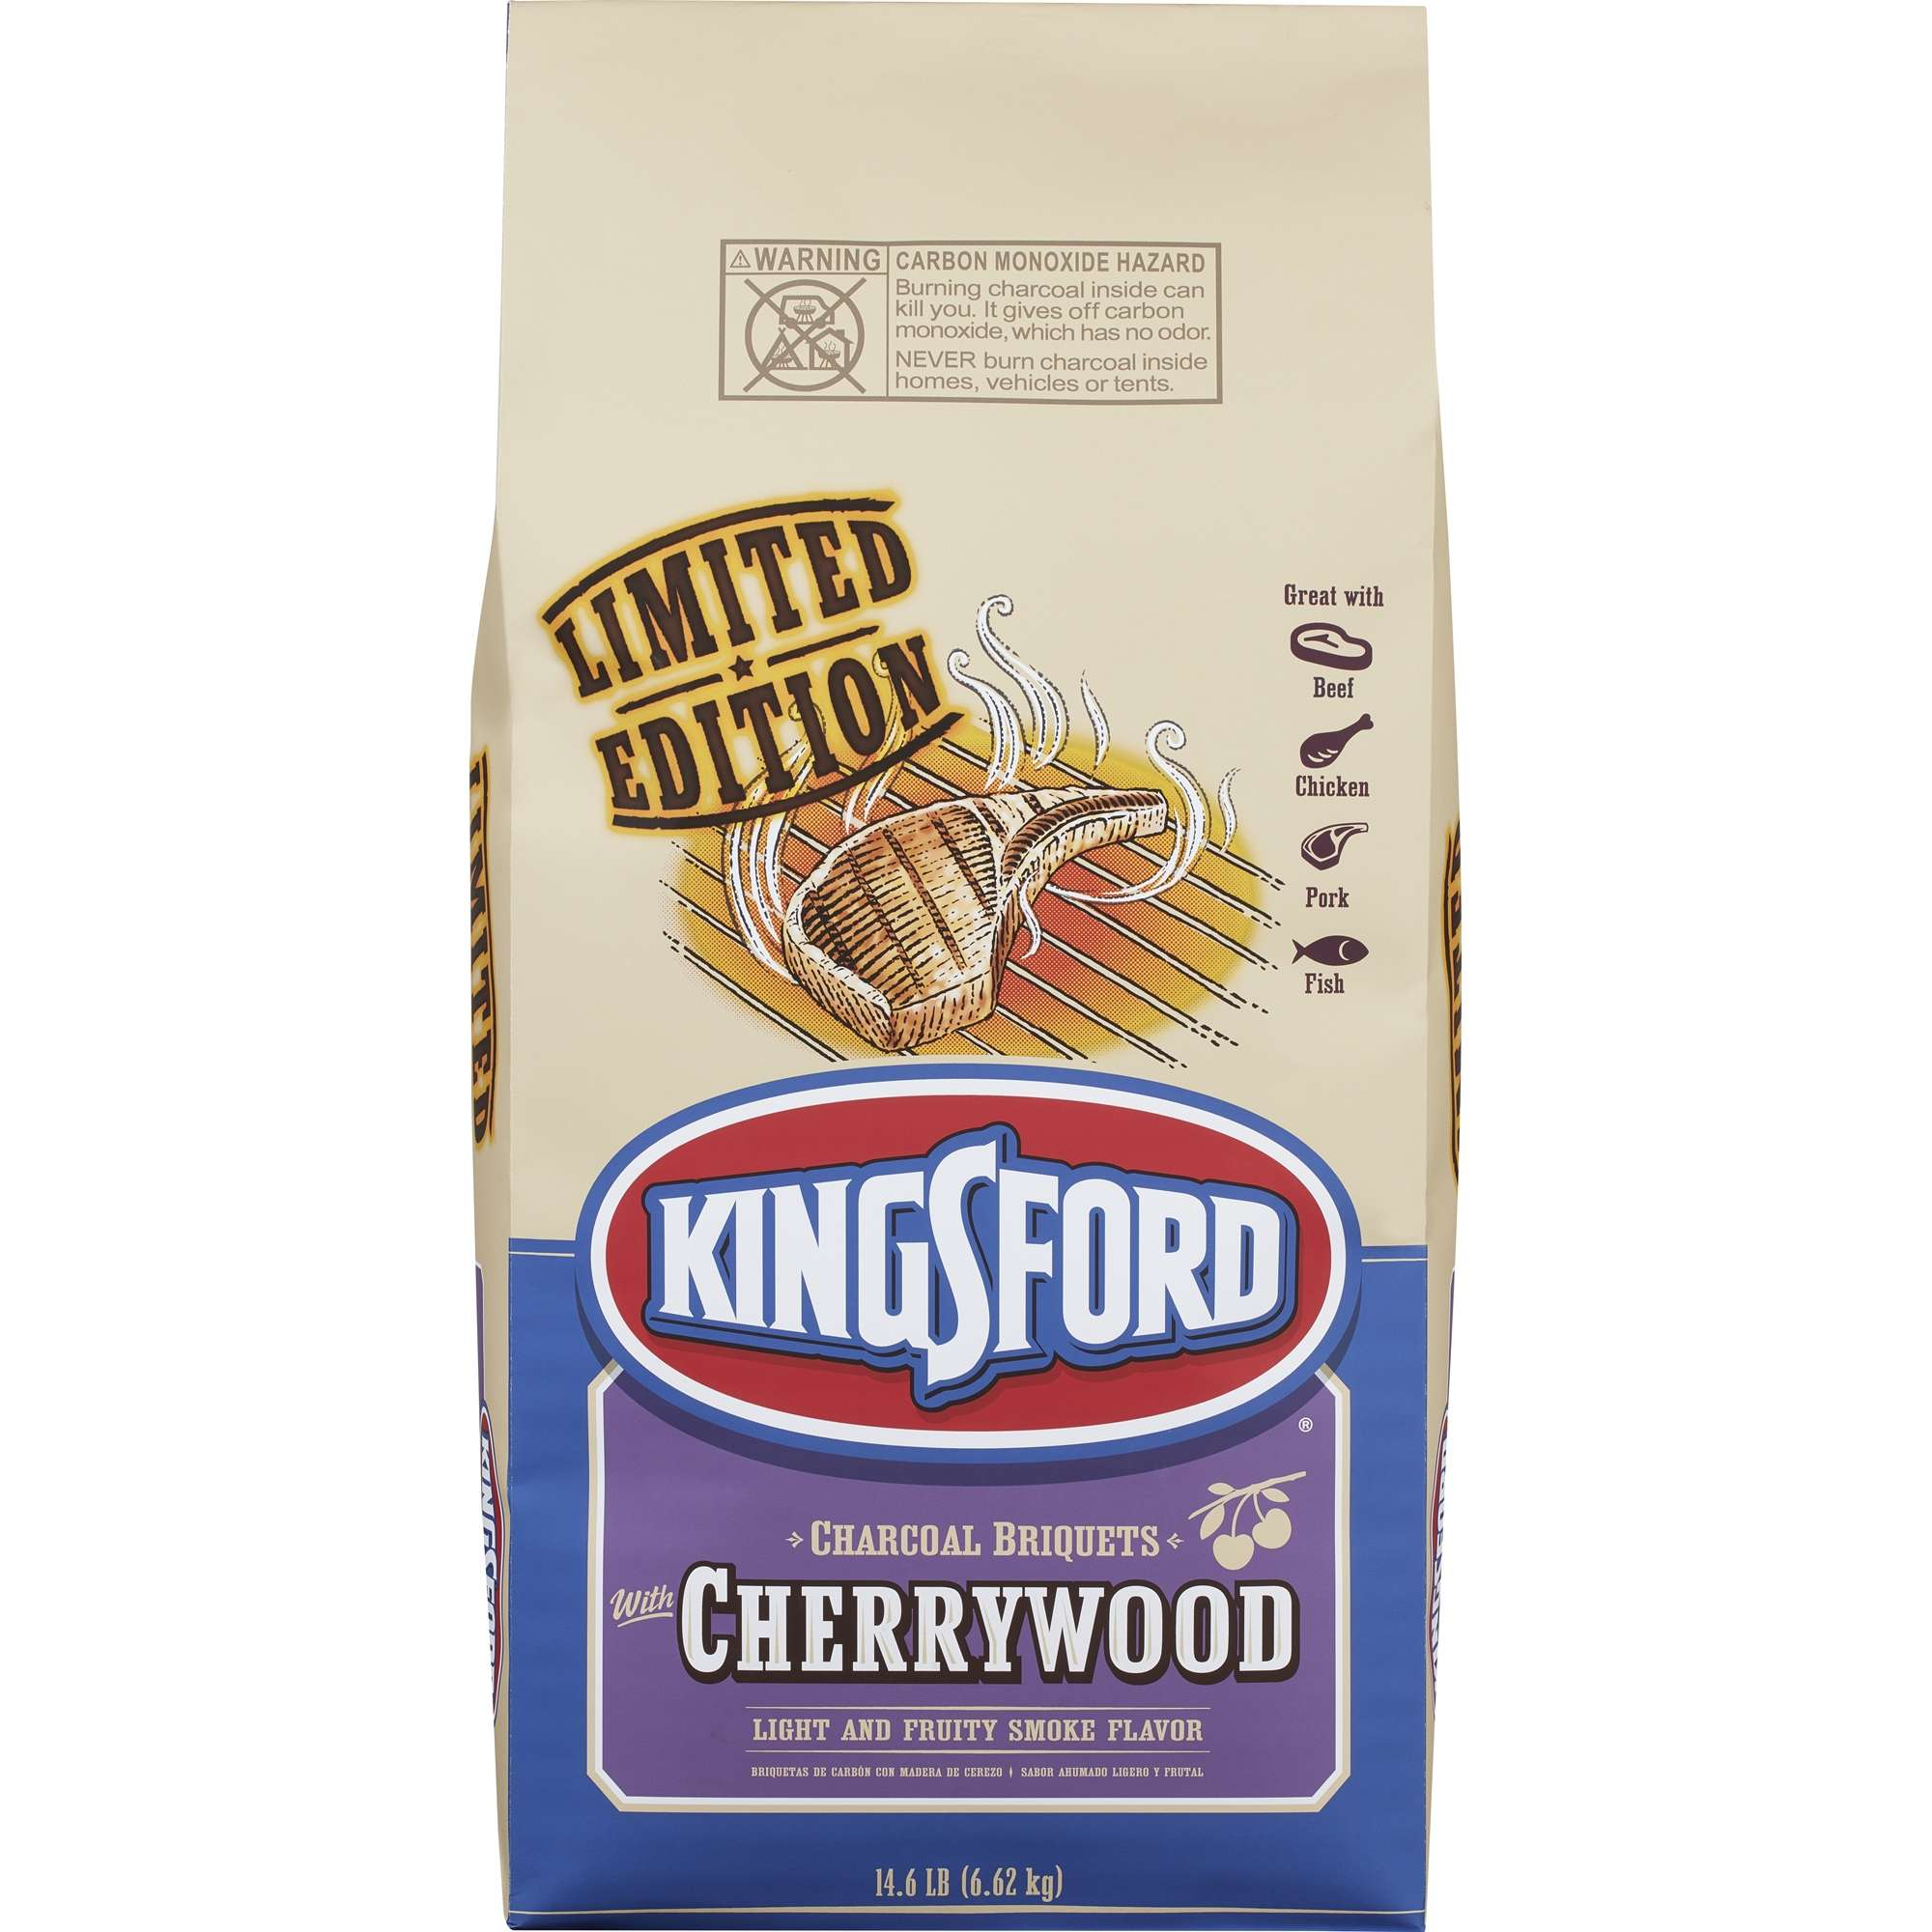 Kingsford Original Charcoal Briquettes with Cherrywood, 14.6 lbs